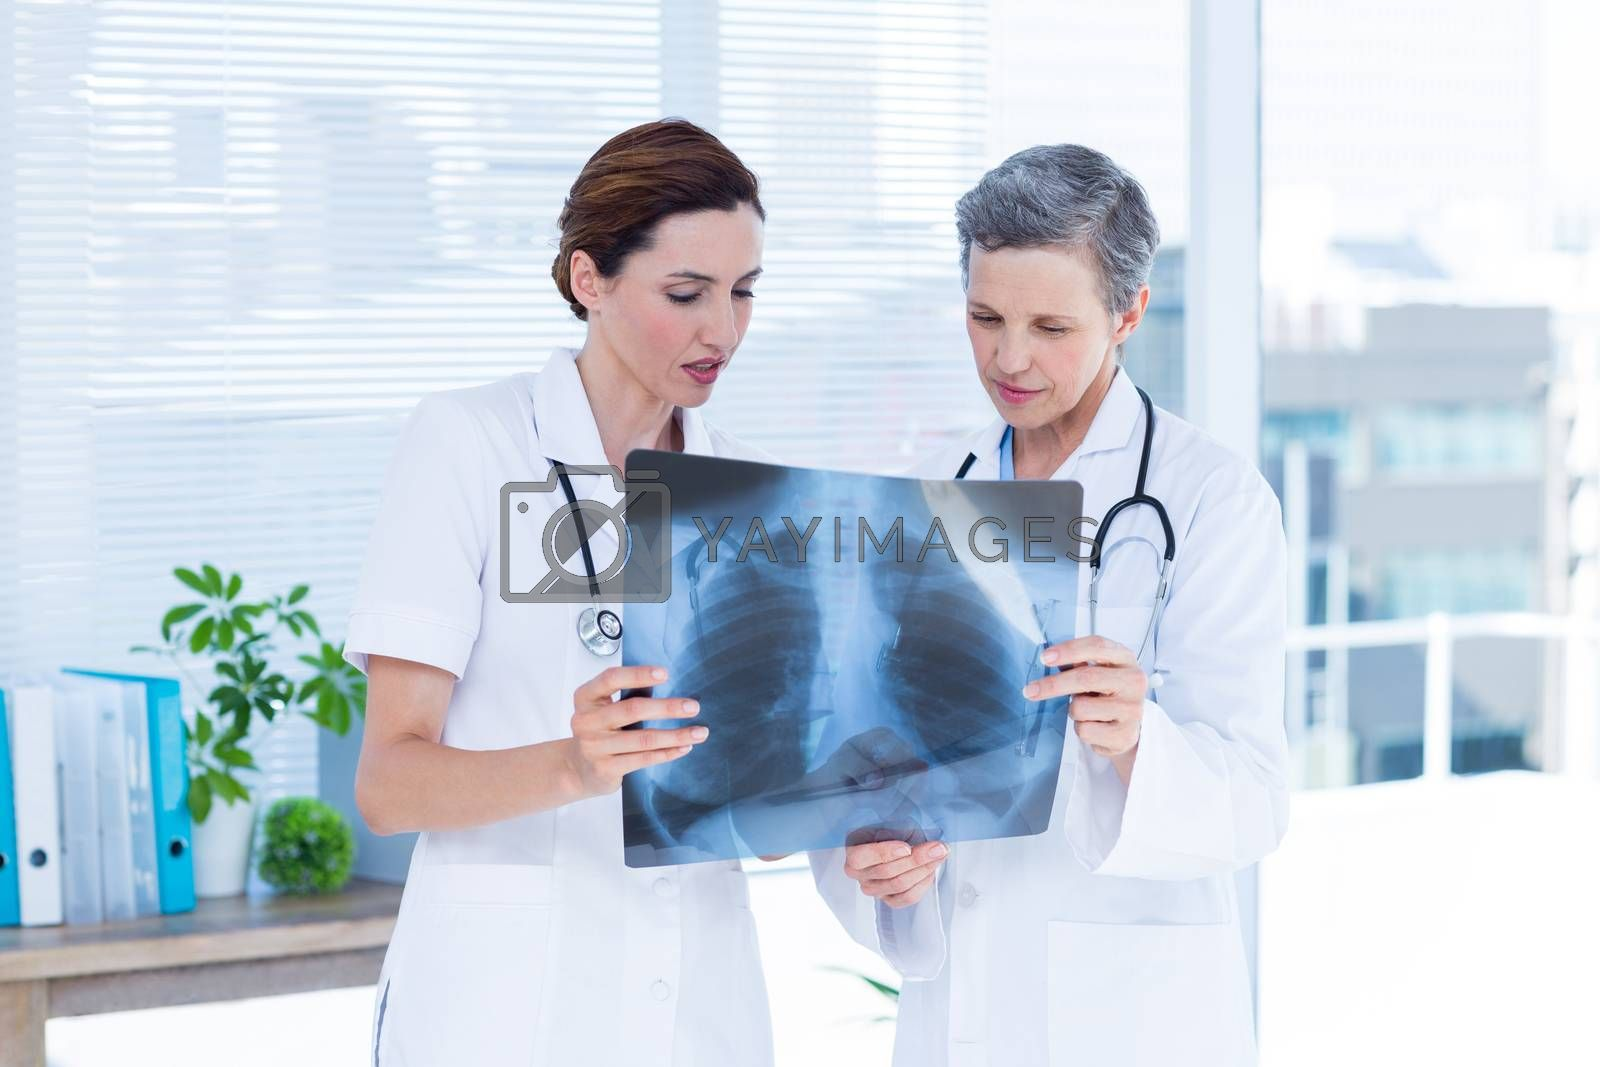 Royalty free image of Concentrated medical colleagues examining x-ray together by Wavebreakmedia